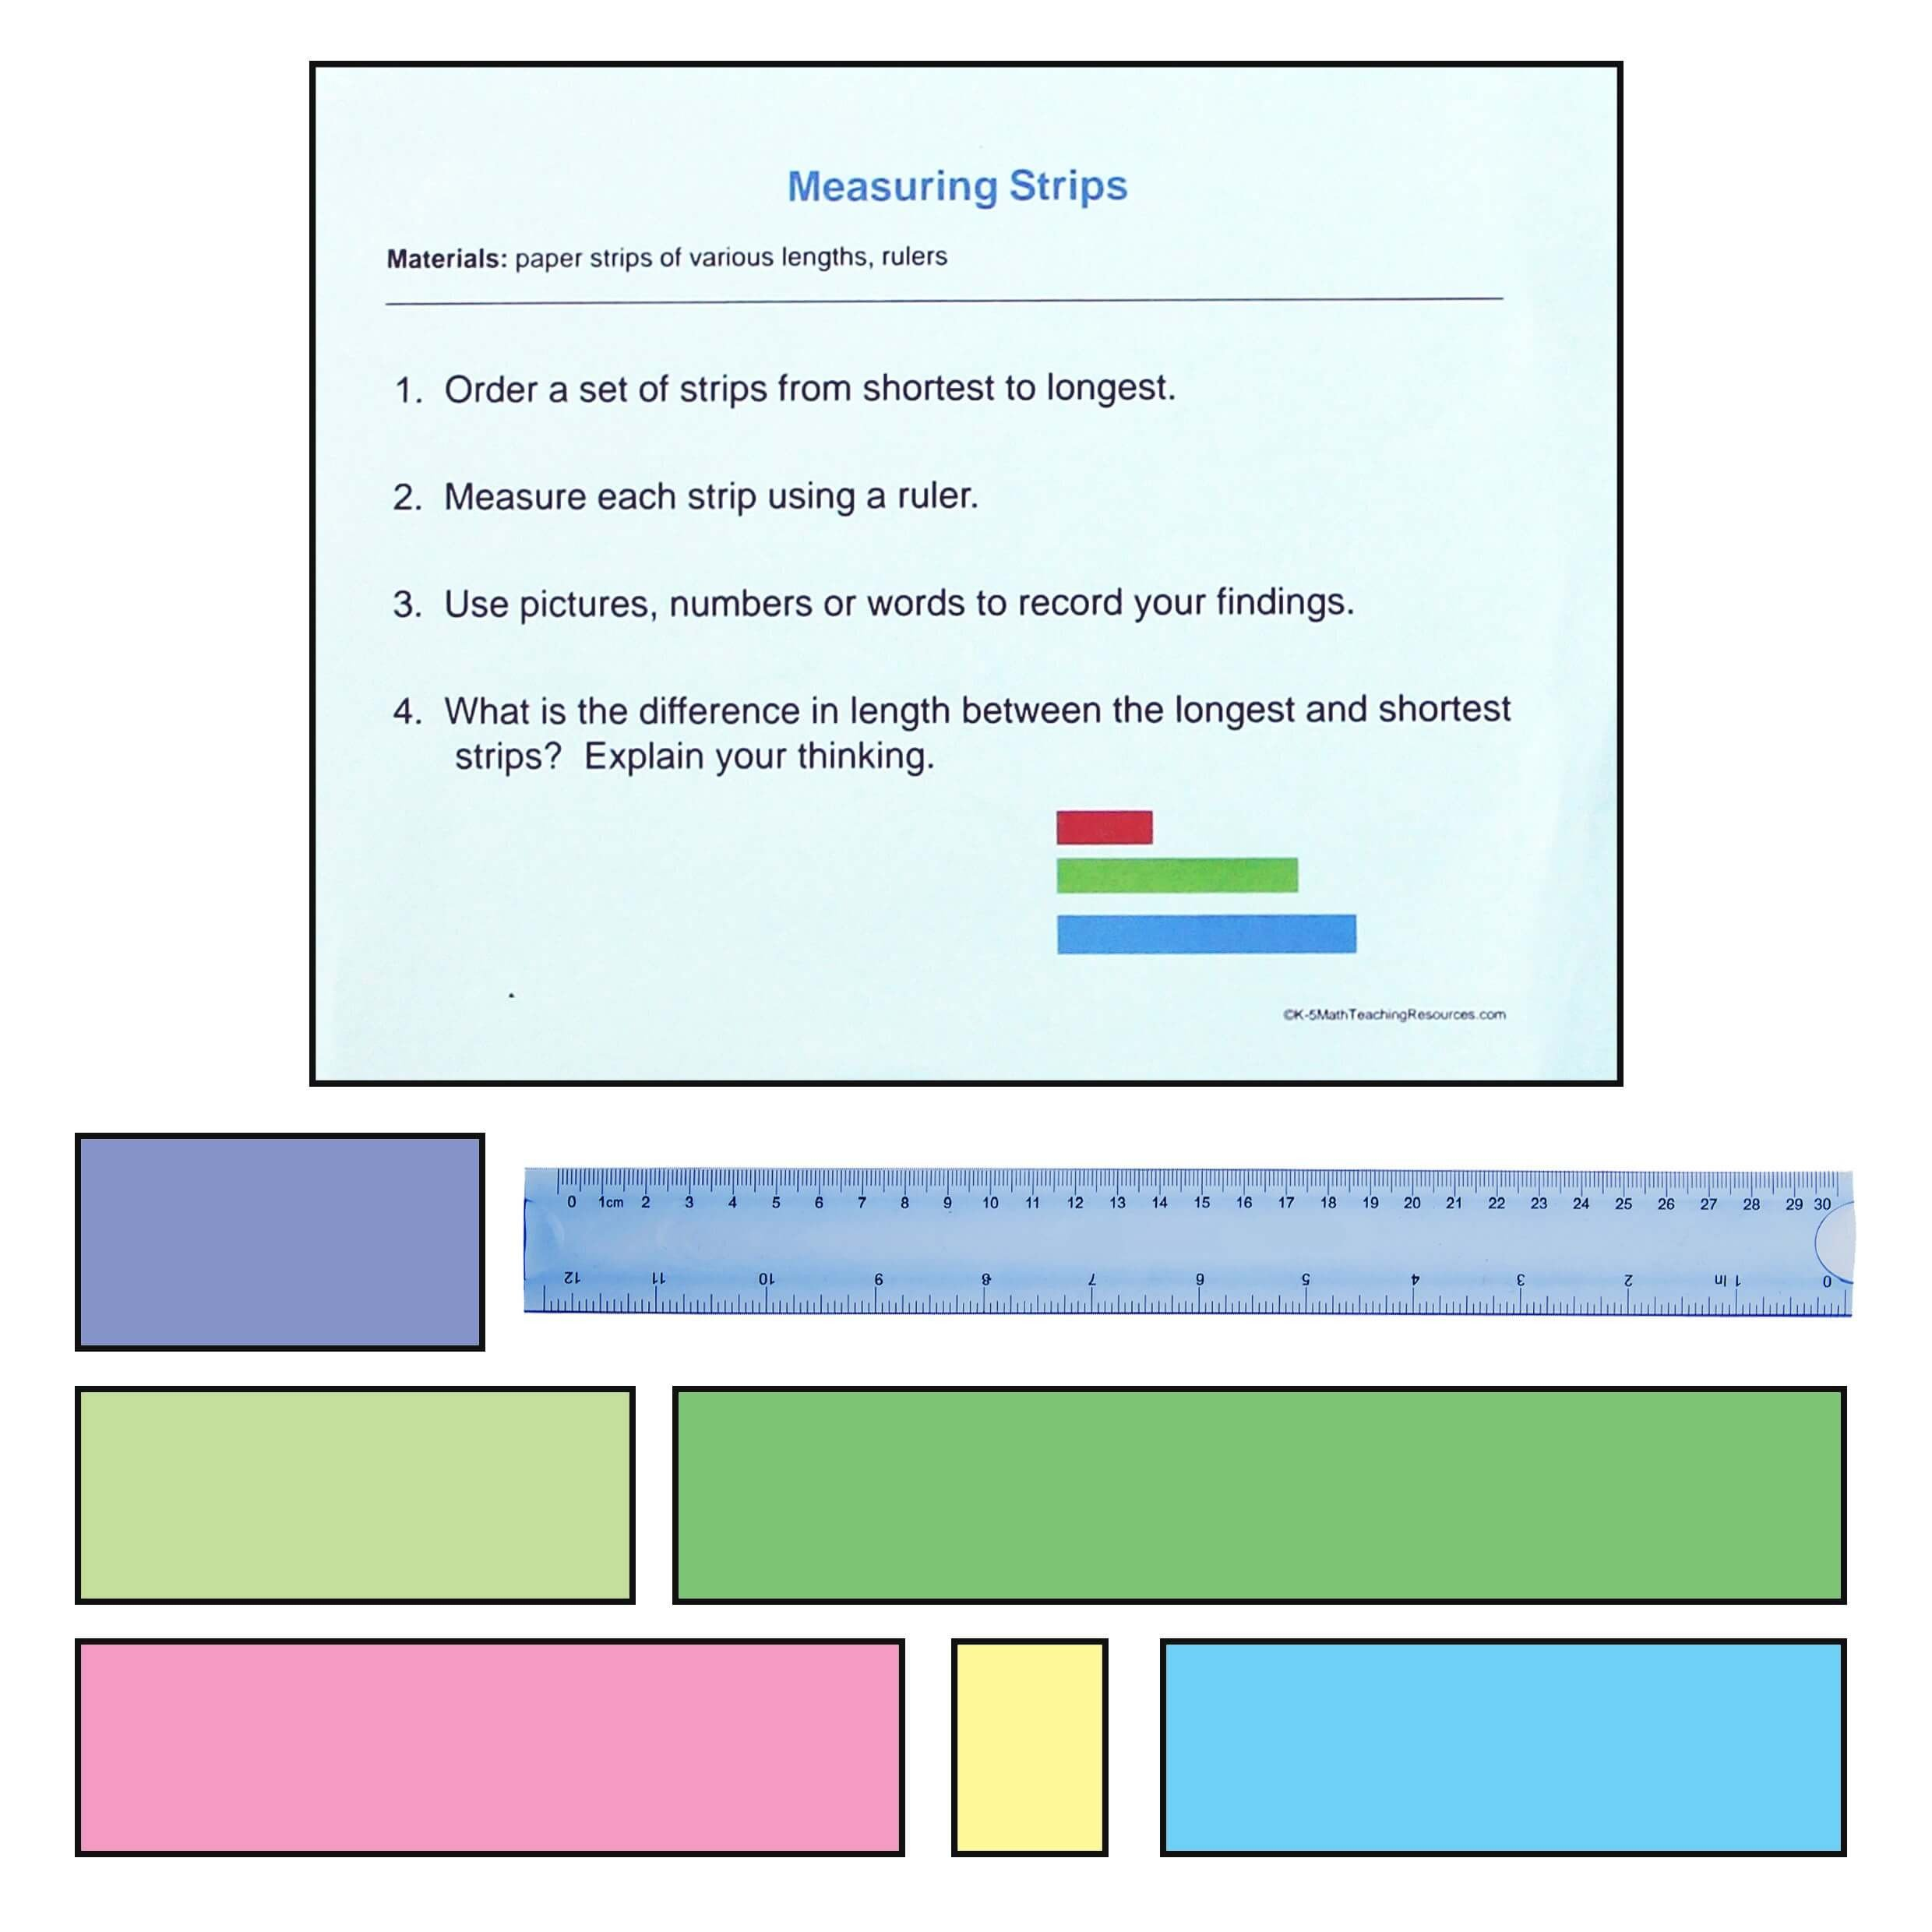 2 MD A 1 Measuring Strips